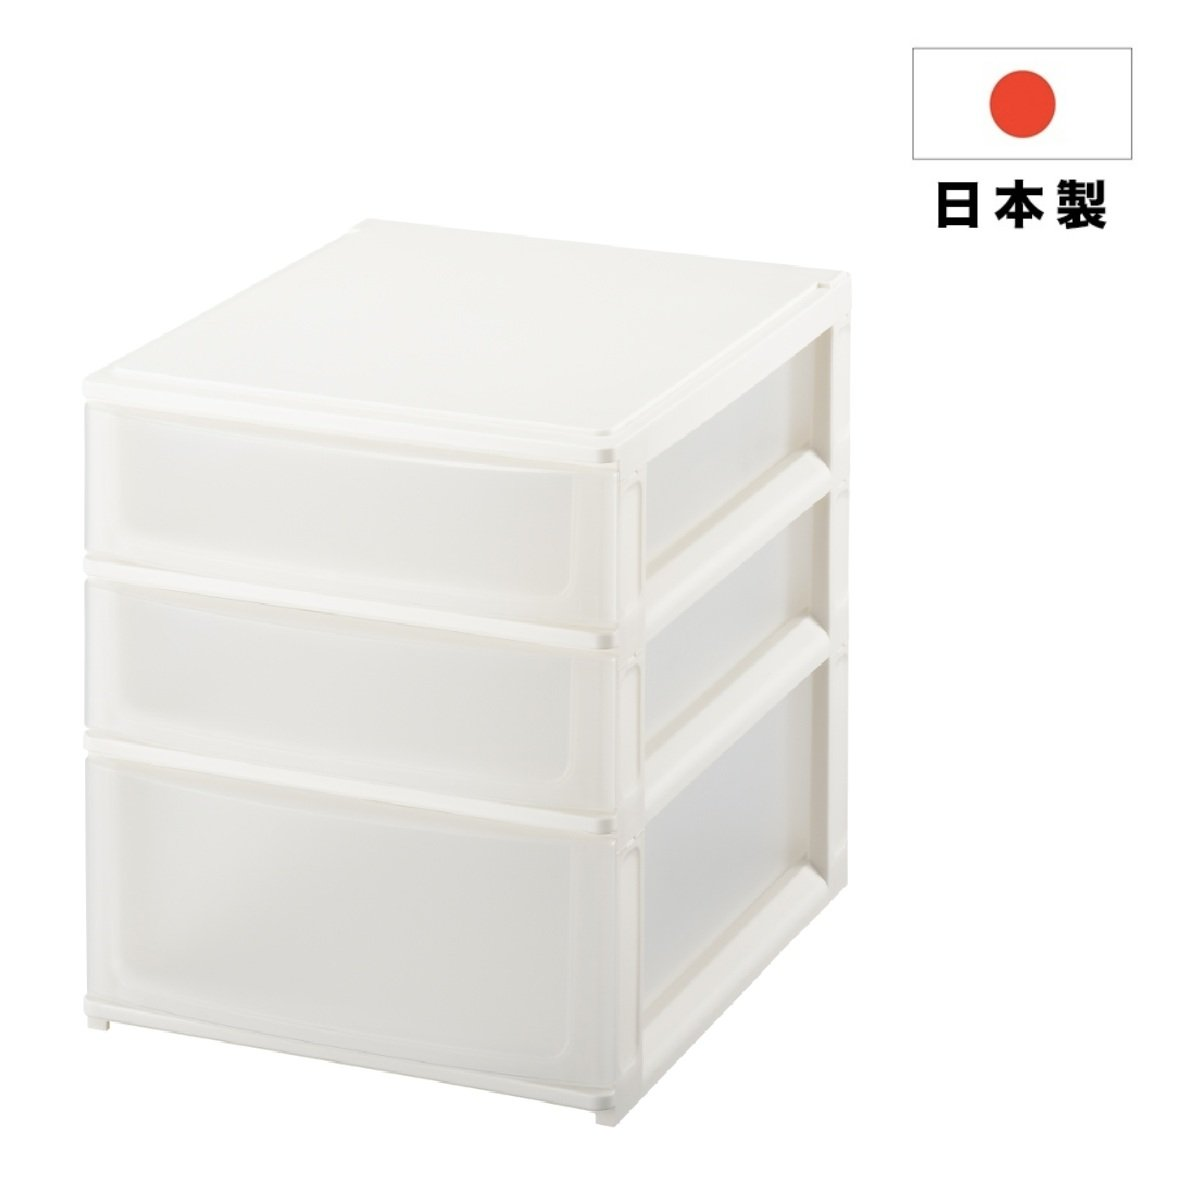 pos'deco 3 Layers Plastic Drawer - A4 Size